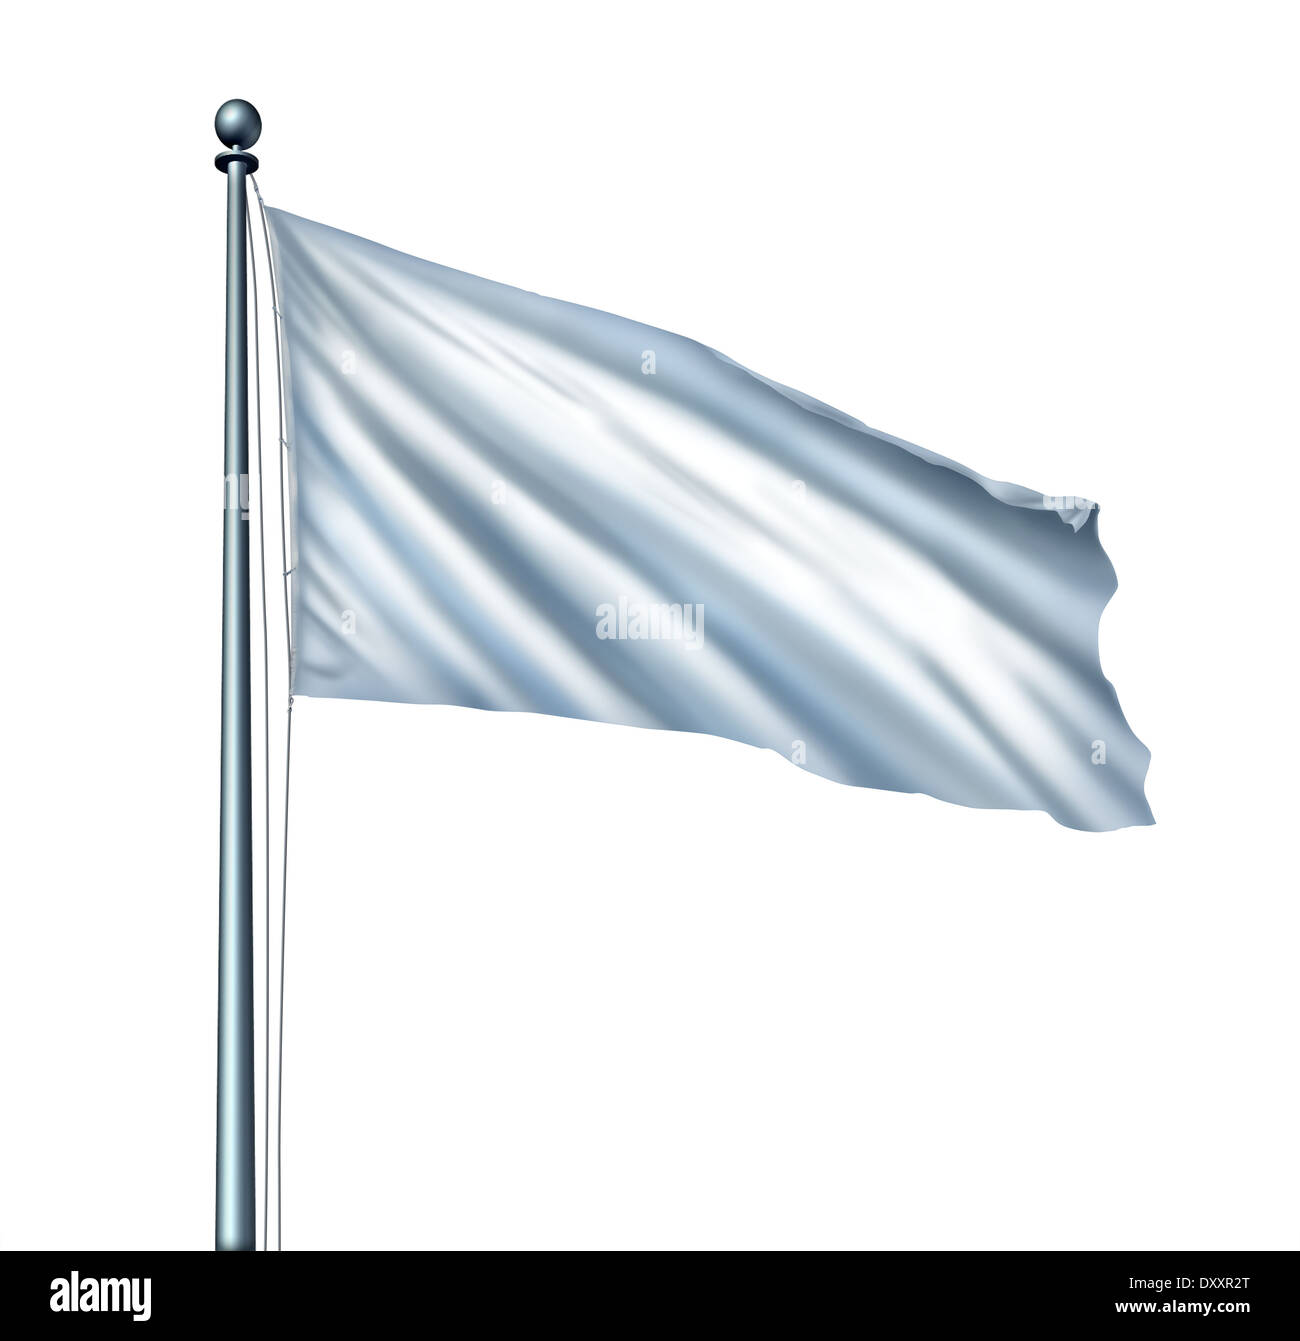 White flag isolated as a surrender symbol and metaphor for